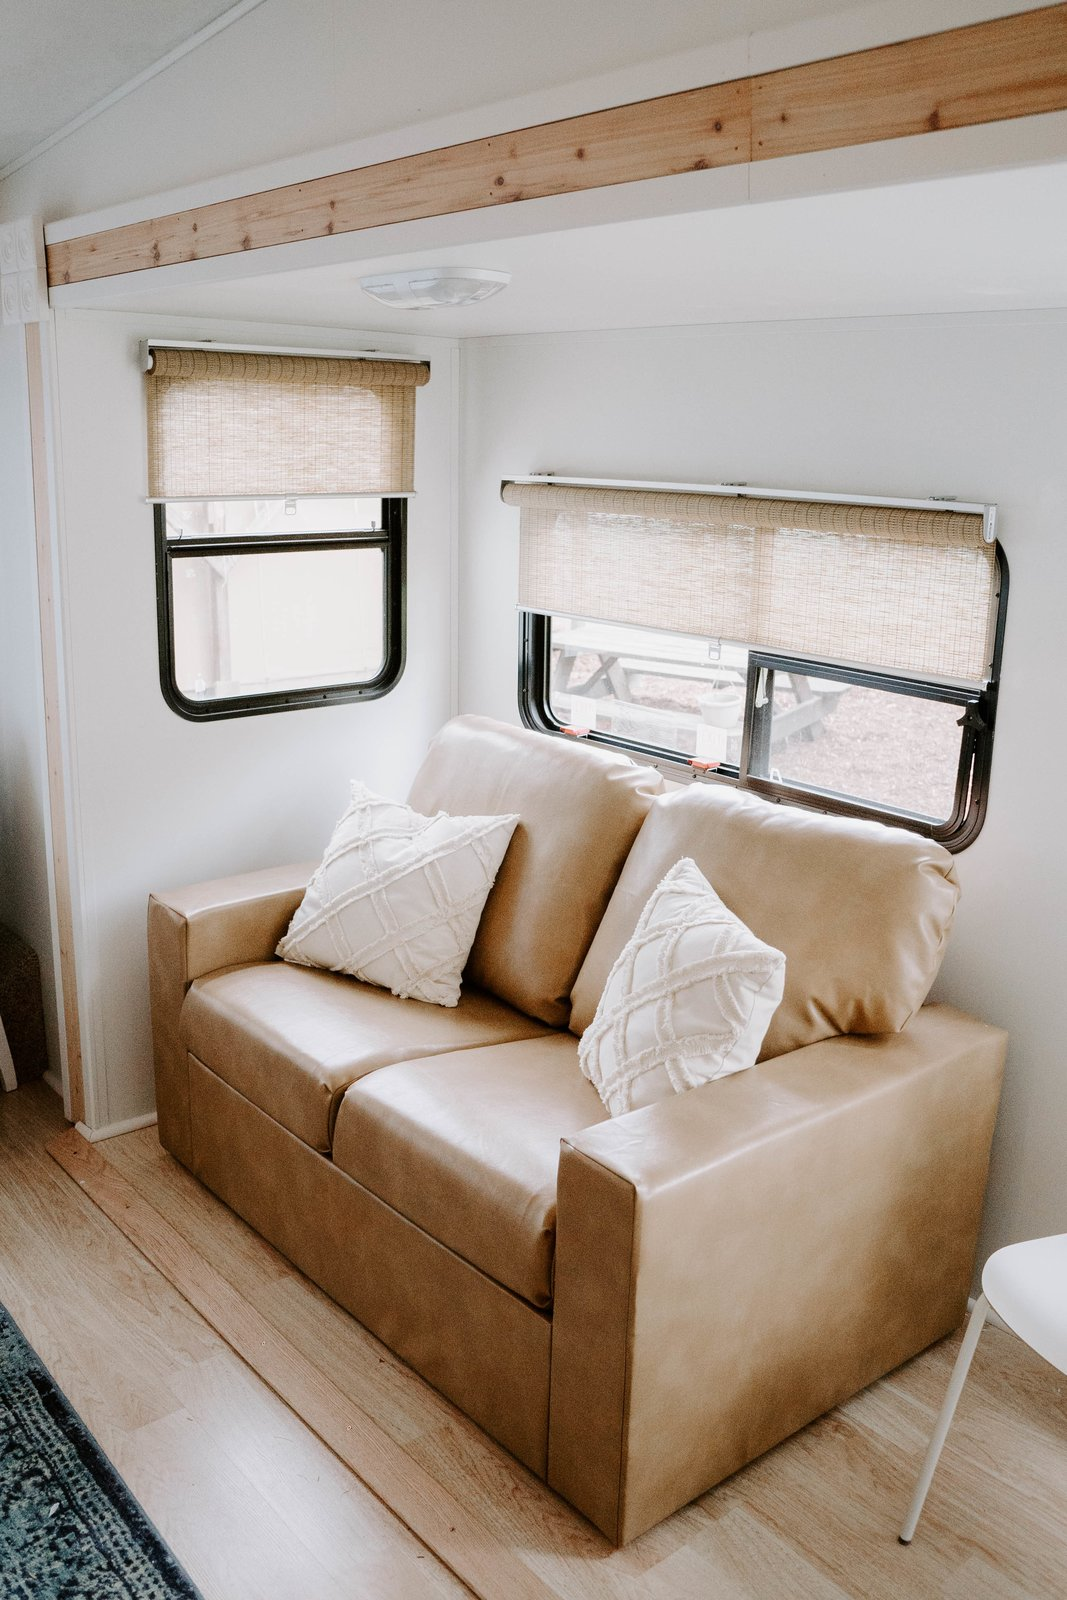 Living Room, Light Hardwood Floor, and Sofa This amazing love seat has storage underneath the seat cushions! Isn't that genius? Especially in a trailer!  The Cougar